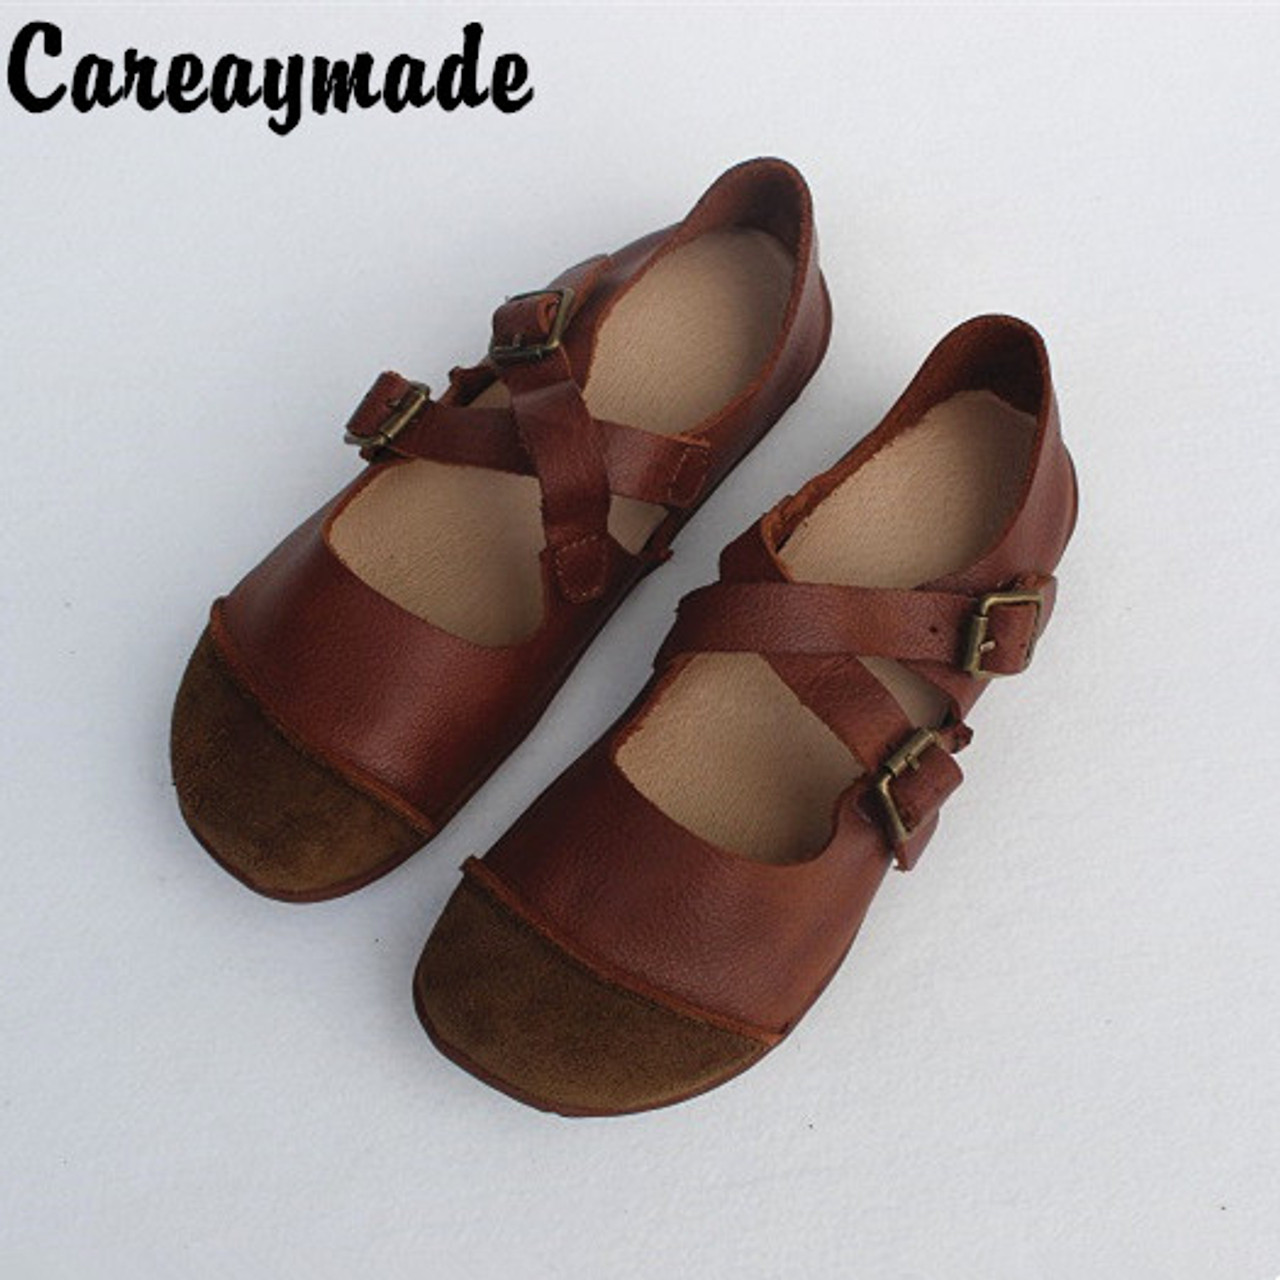 Careaymade-Spring real leather, pure